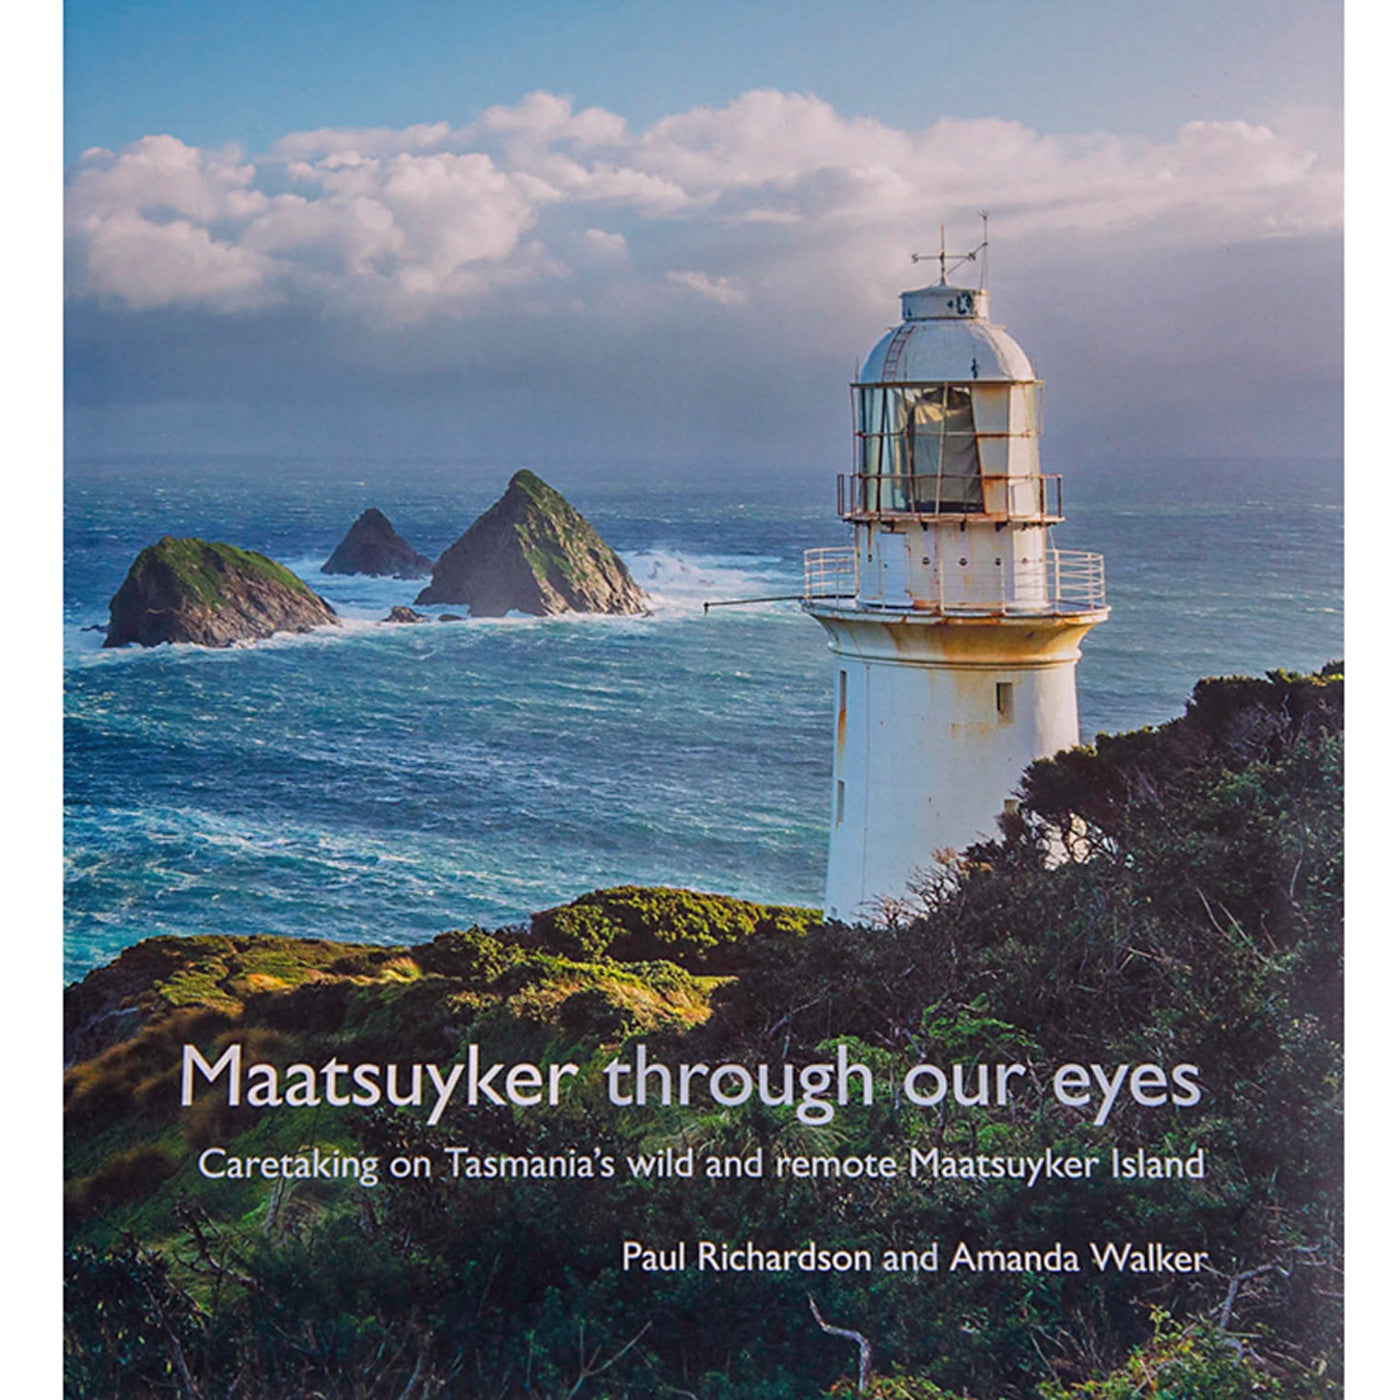 Maatsuyker Through Our Eyes: Caretaking on Tasmania's wild and remote Maatsuyker Island